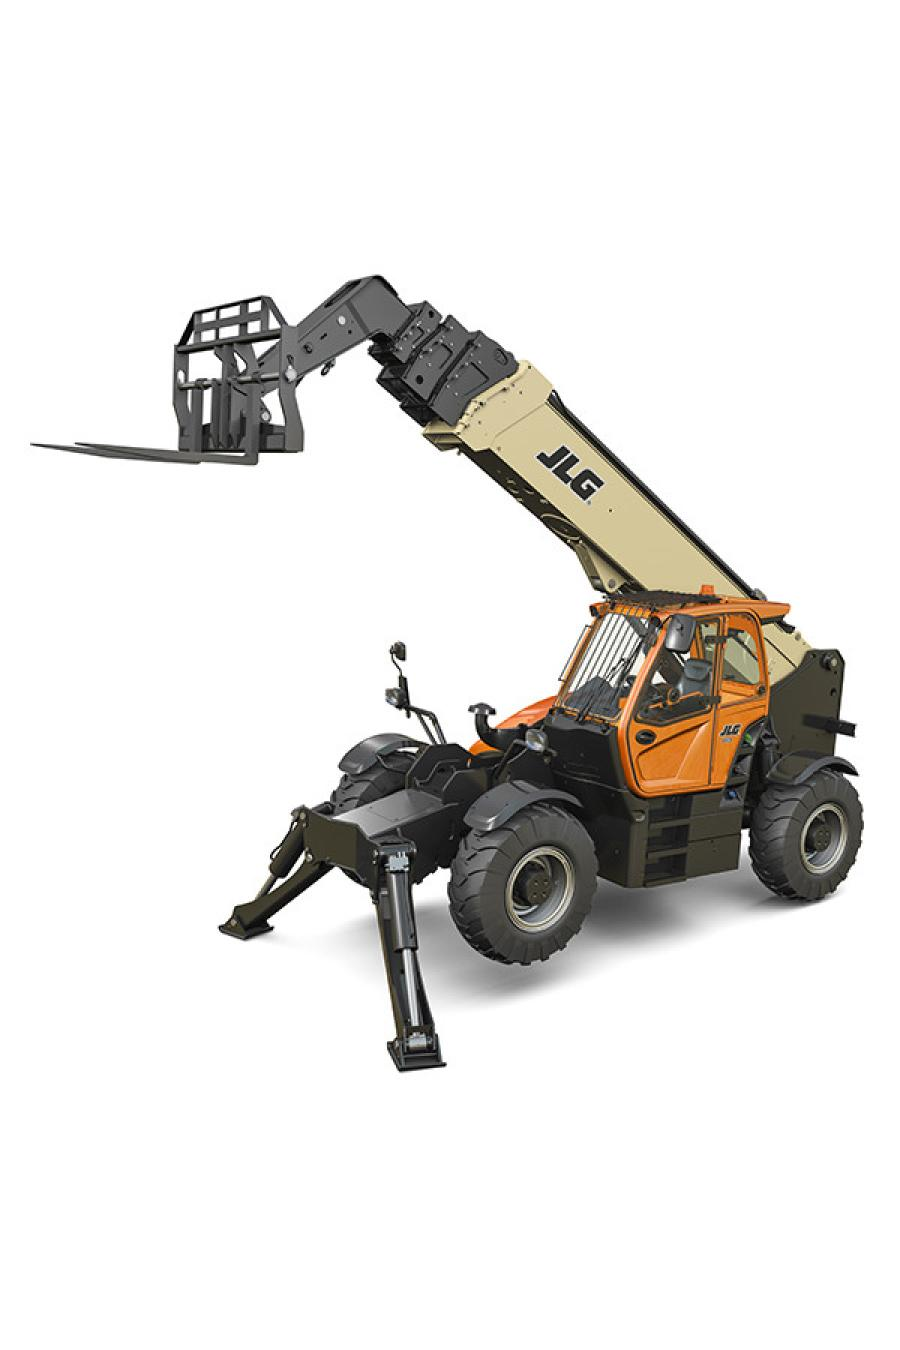 The JLG 1075 was developed as a result of customer input, requesting a 10,000-lb. class telehandler with greater height and reach. The new model features a 75-ft. boom that can lift up to eight stories – a full two stories more than comparable models – and offers a 60-ft. reach.